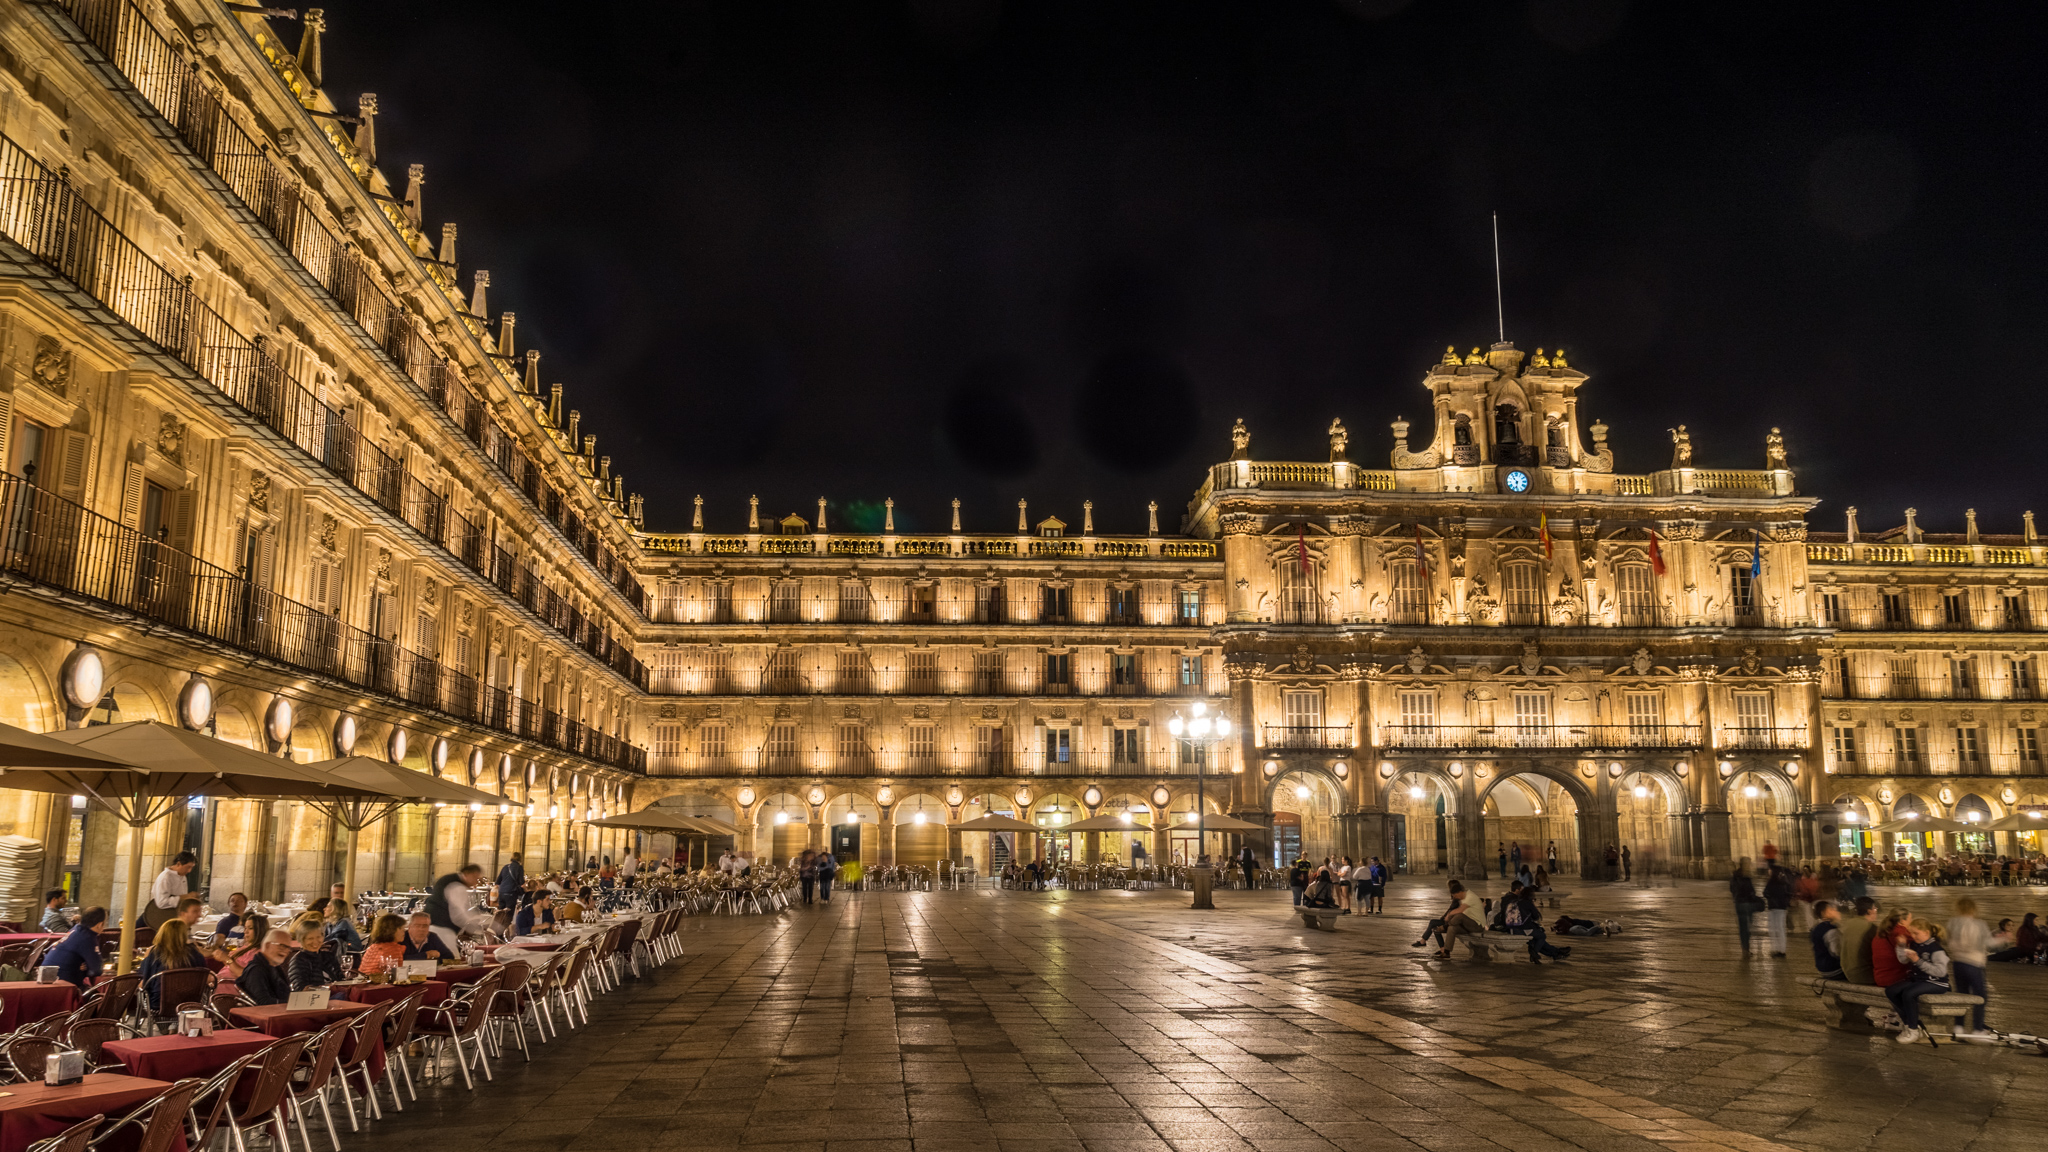 Plaza Mayor, Salamanca at night., Spain